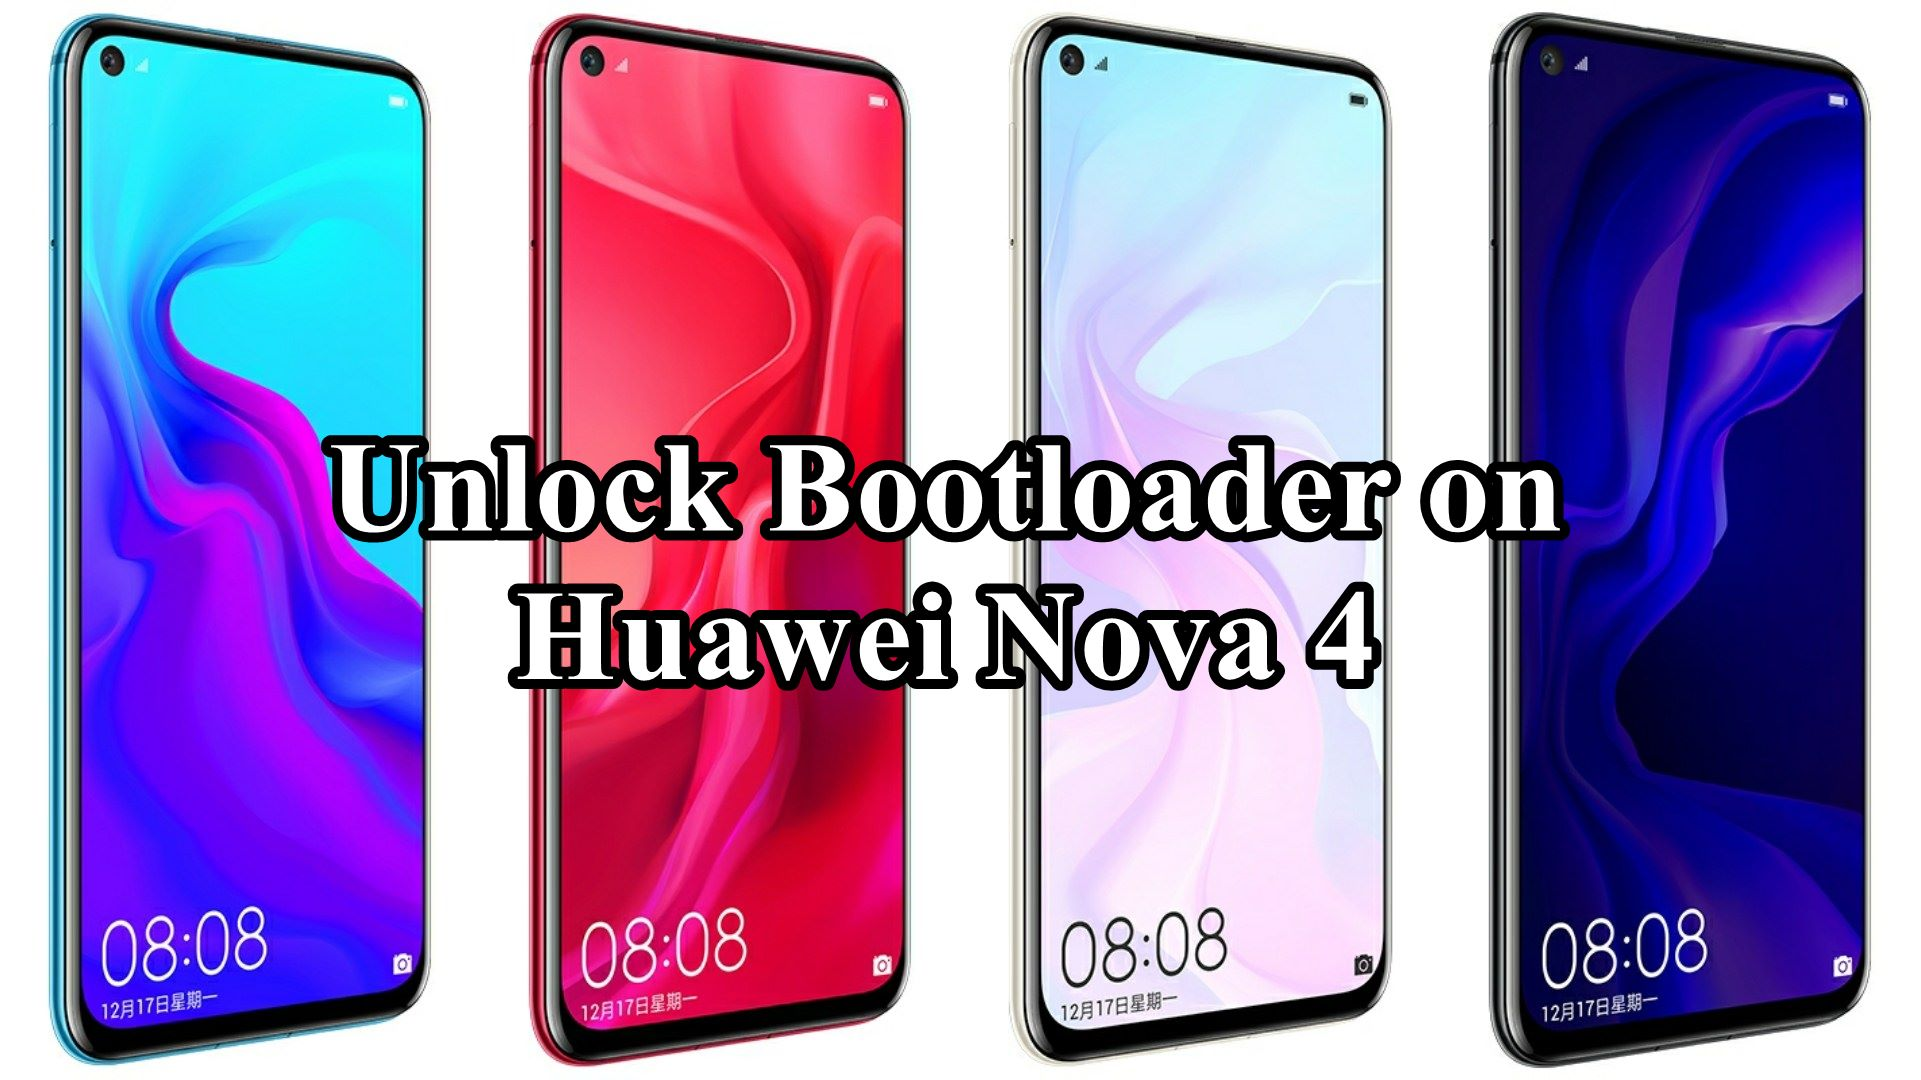 How to Unlock Bootloader on Huawei Nova 4 - Android Result